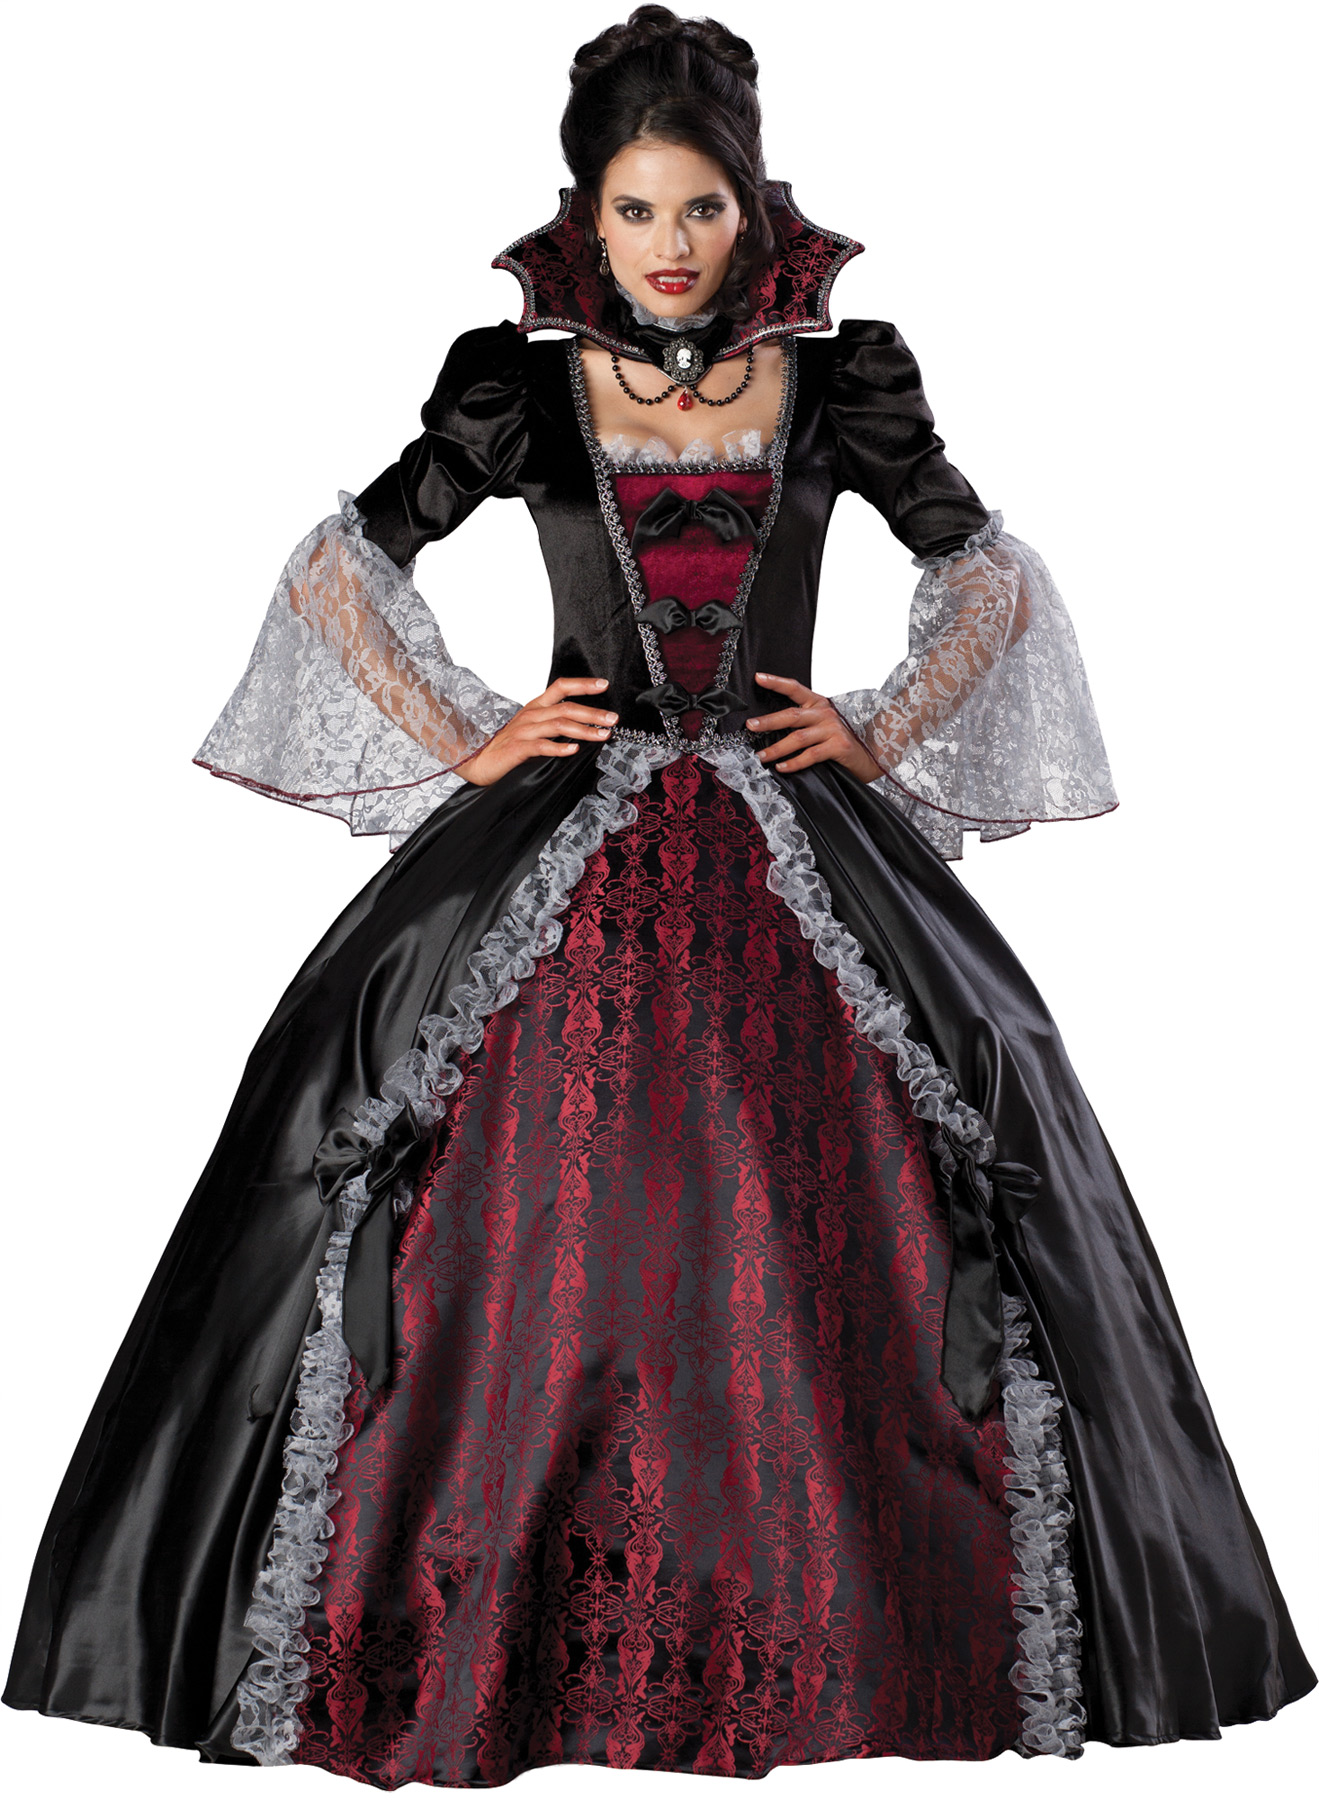 Regal Vampiress of Versailles Costume